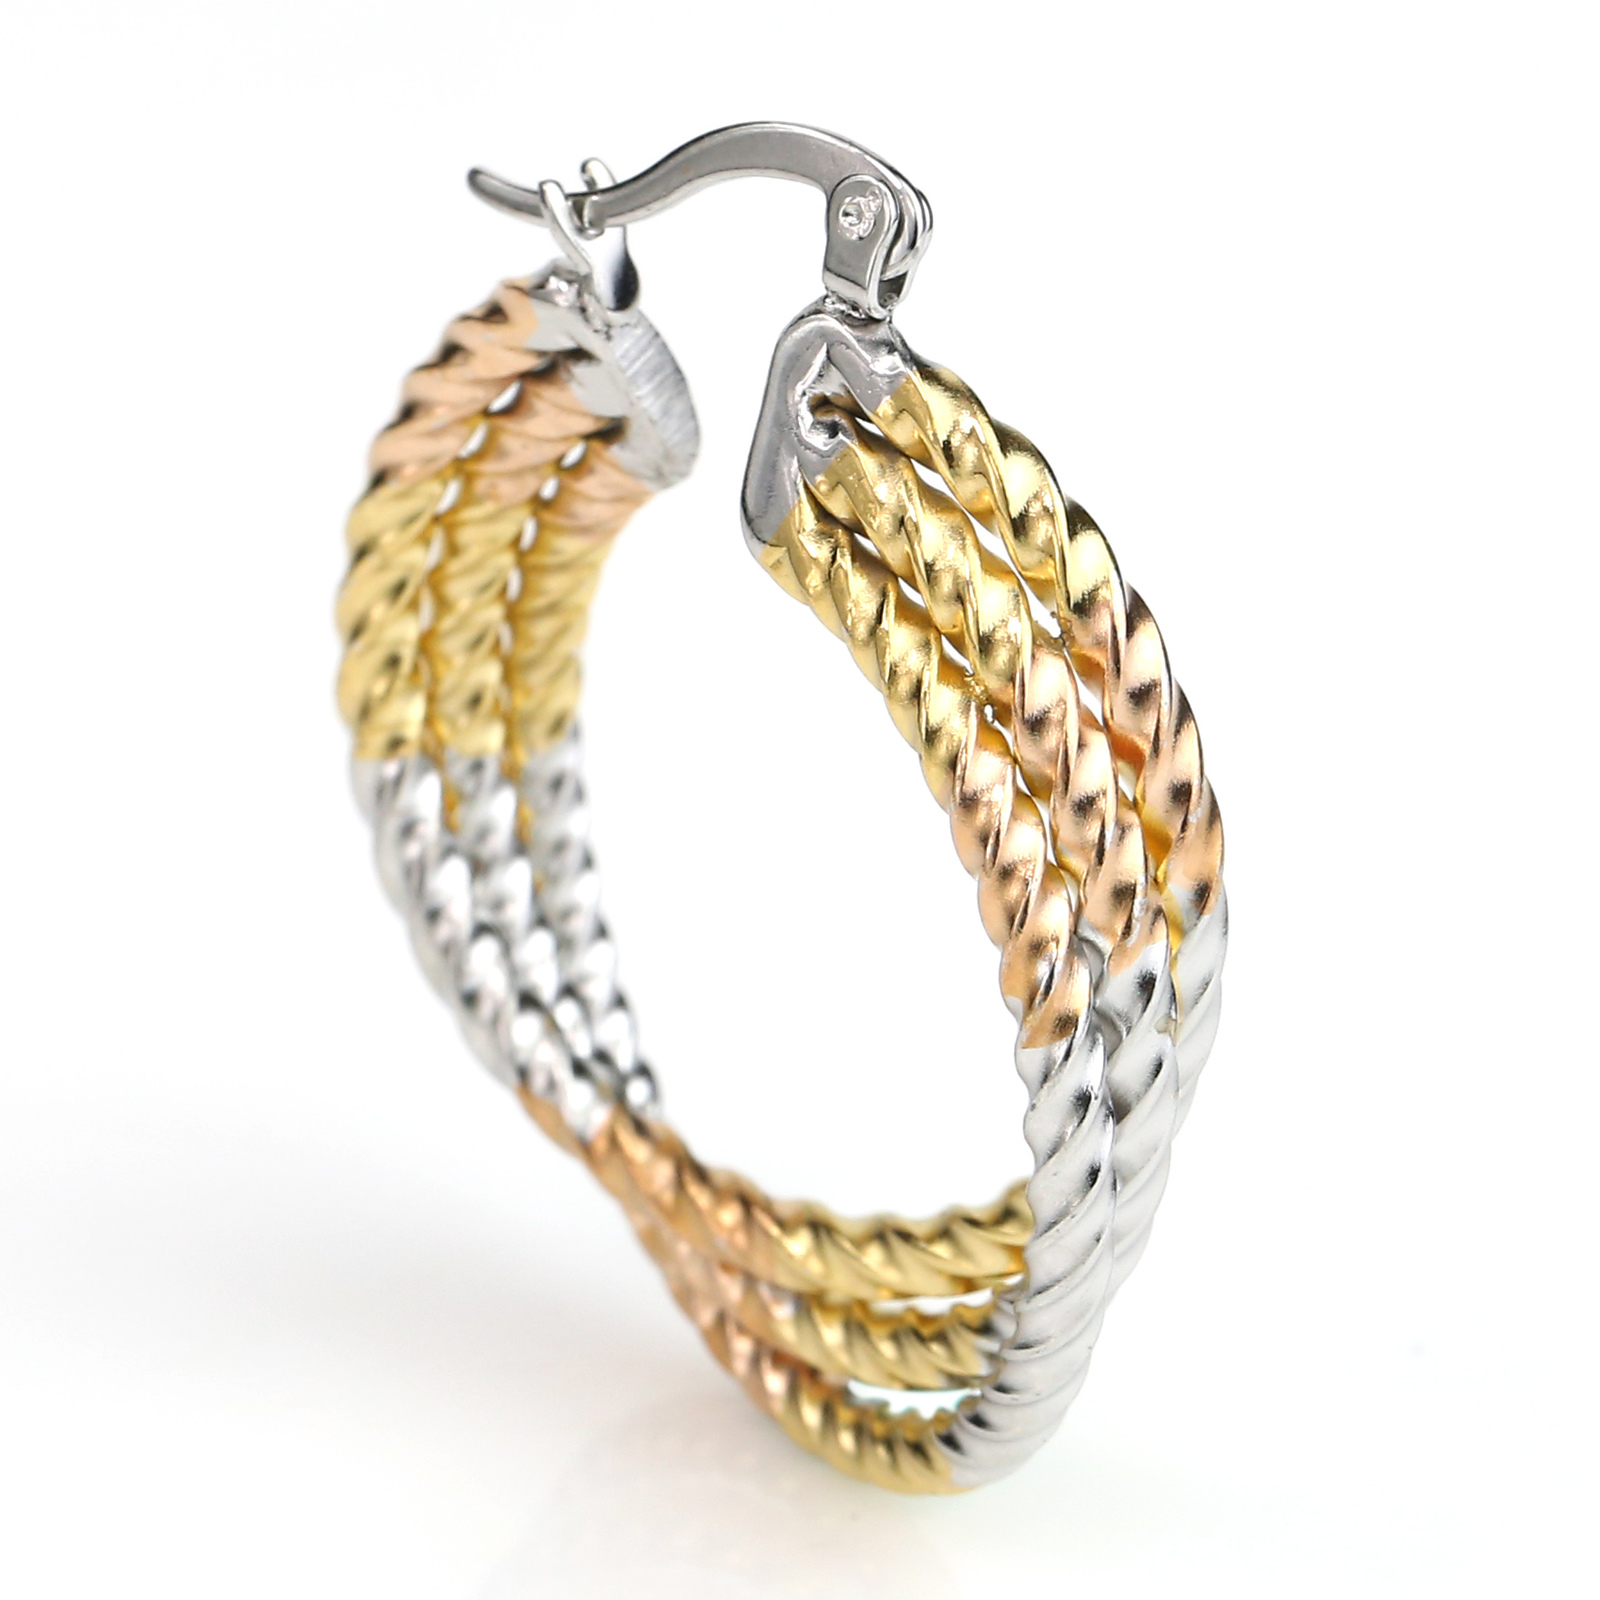 Contemporary Twisted Tri-Color Silver, Gold Hoop Earrings- United Elegance image 2